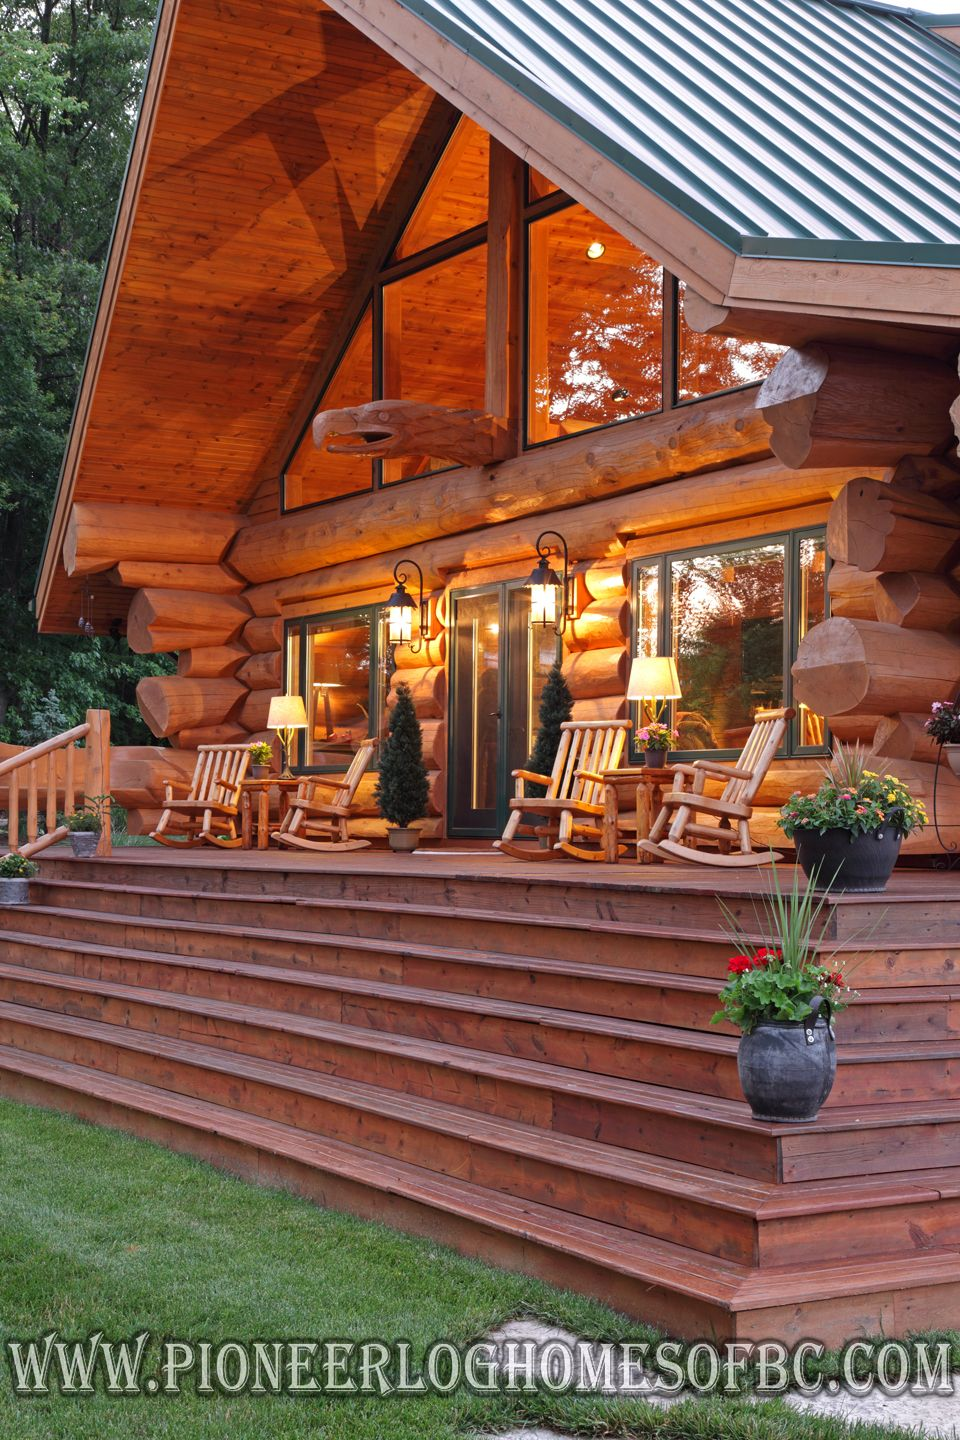 Custom Log Homes Picture Gallery Log Cabin Homes Pictures Bc Canada Log Cabin Furniture Log Cabin Homes Log Homes